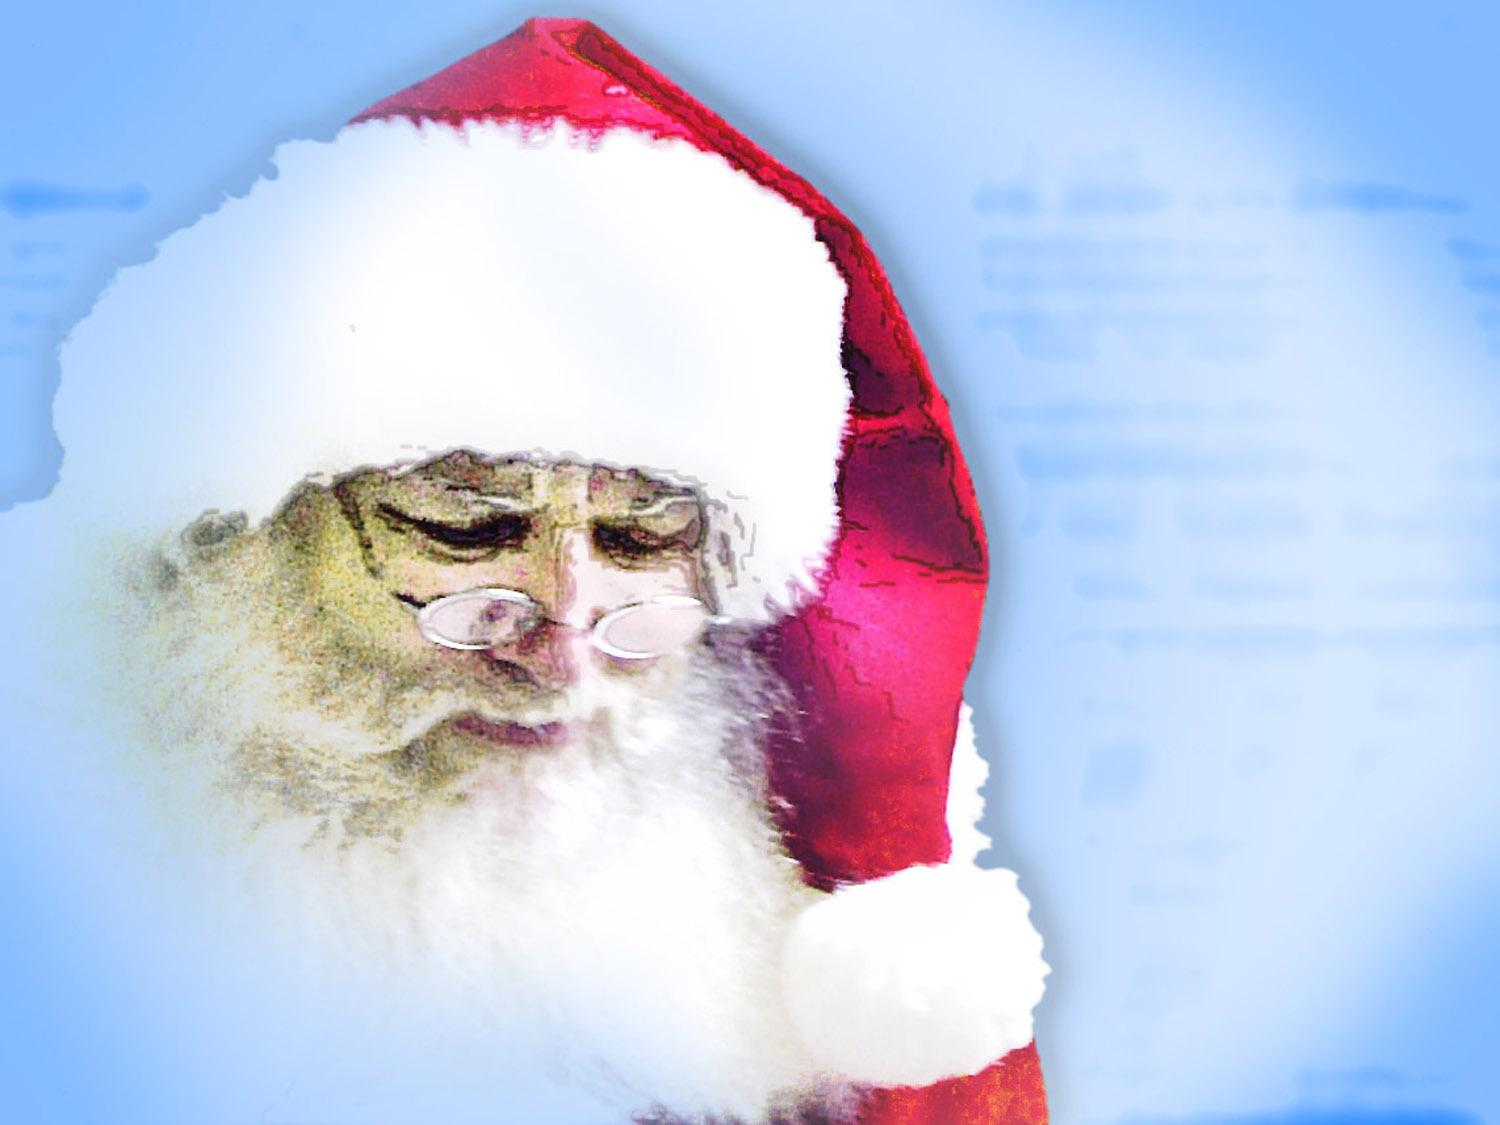 Not so jolly: Mom wants Santa fired for fat-shaming son